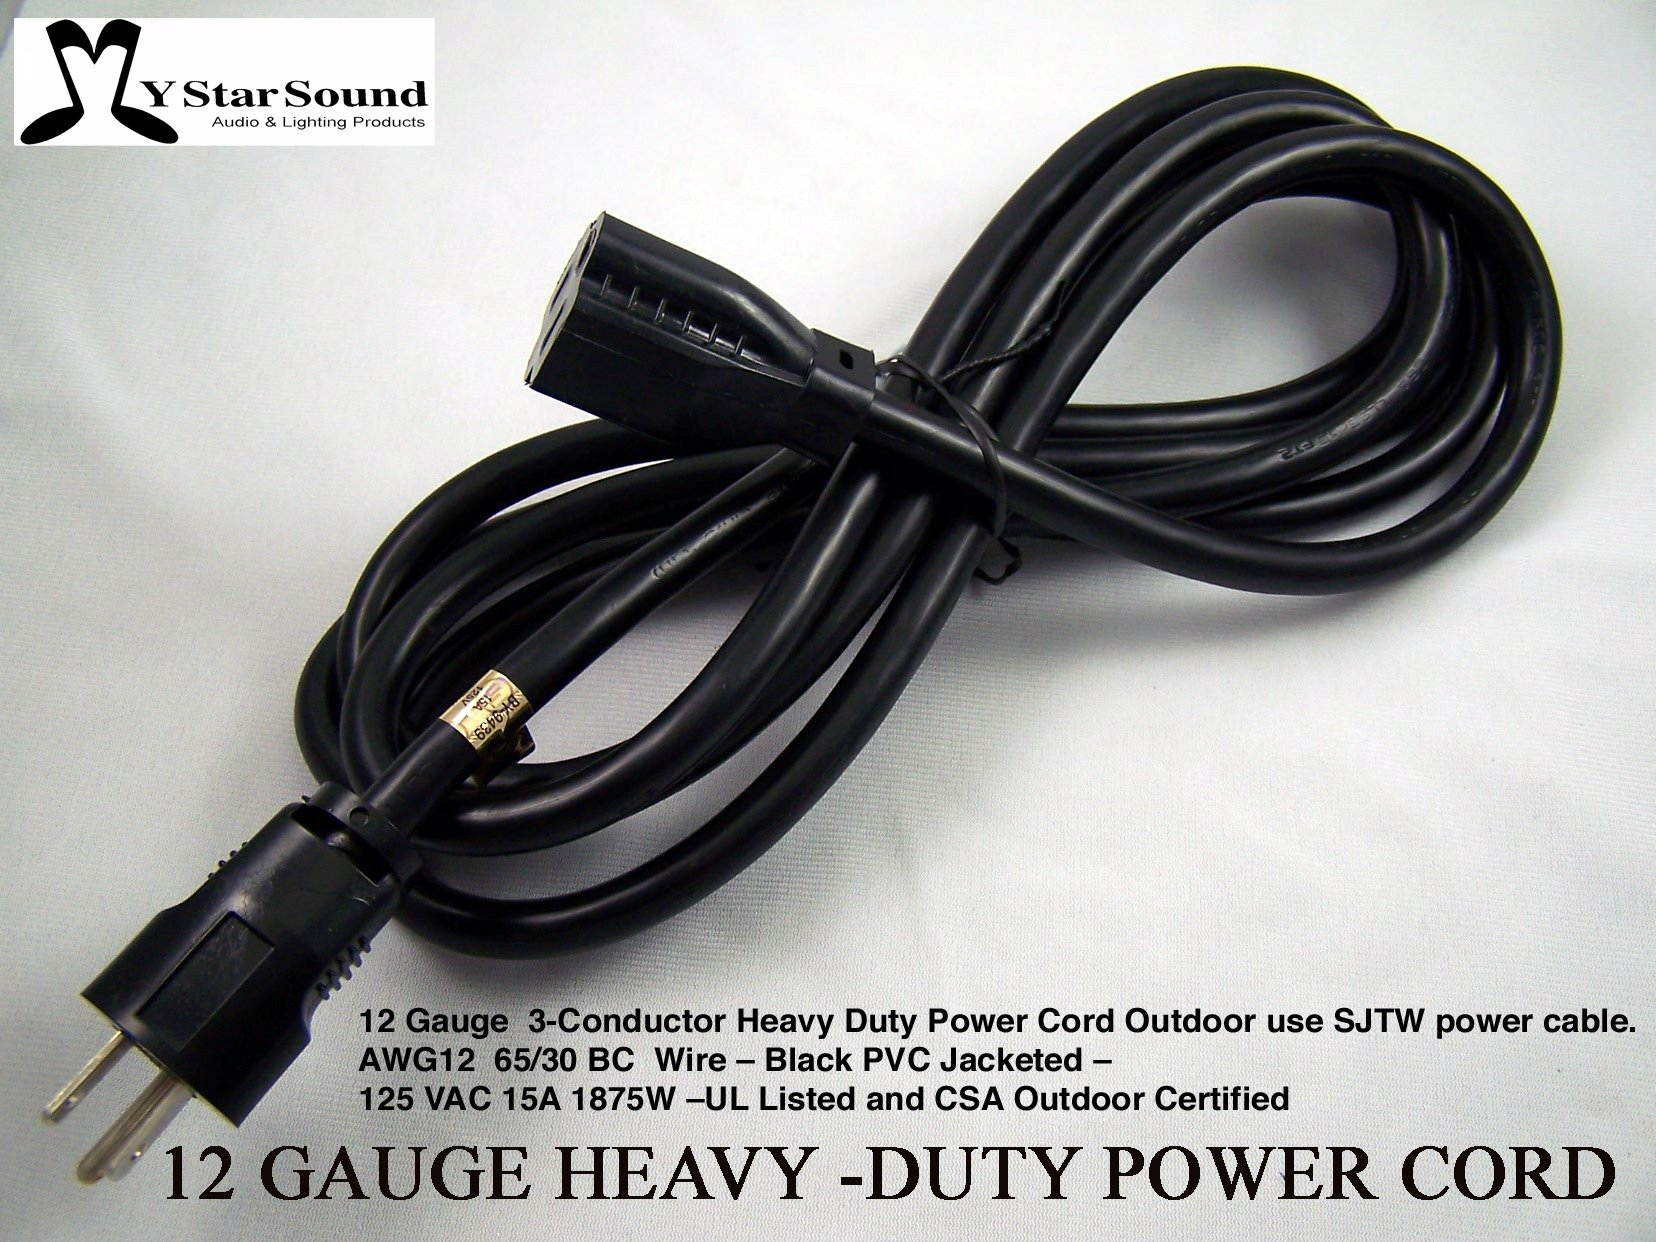 Extension Power Cord 10' Heavy Duty 12 Gauge 3 Conductor Rated for Outdoor Use. Great for Live Entertainment & Motor Home Power Sjtw